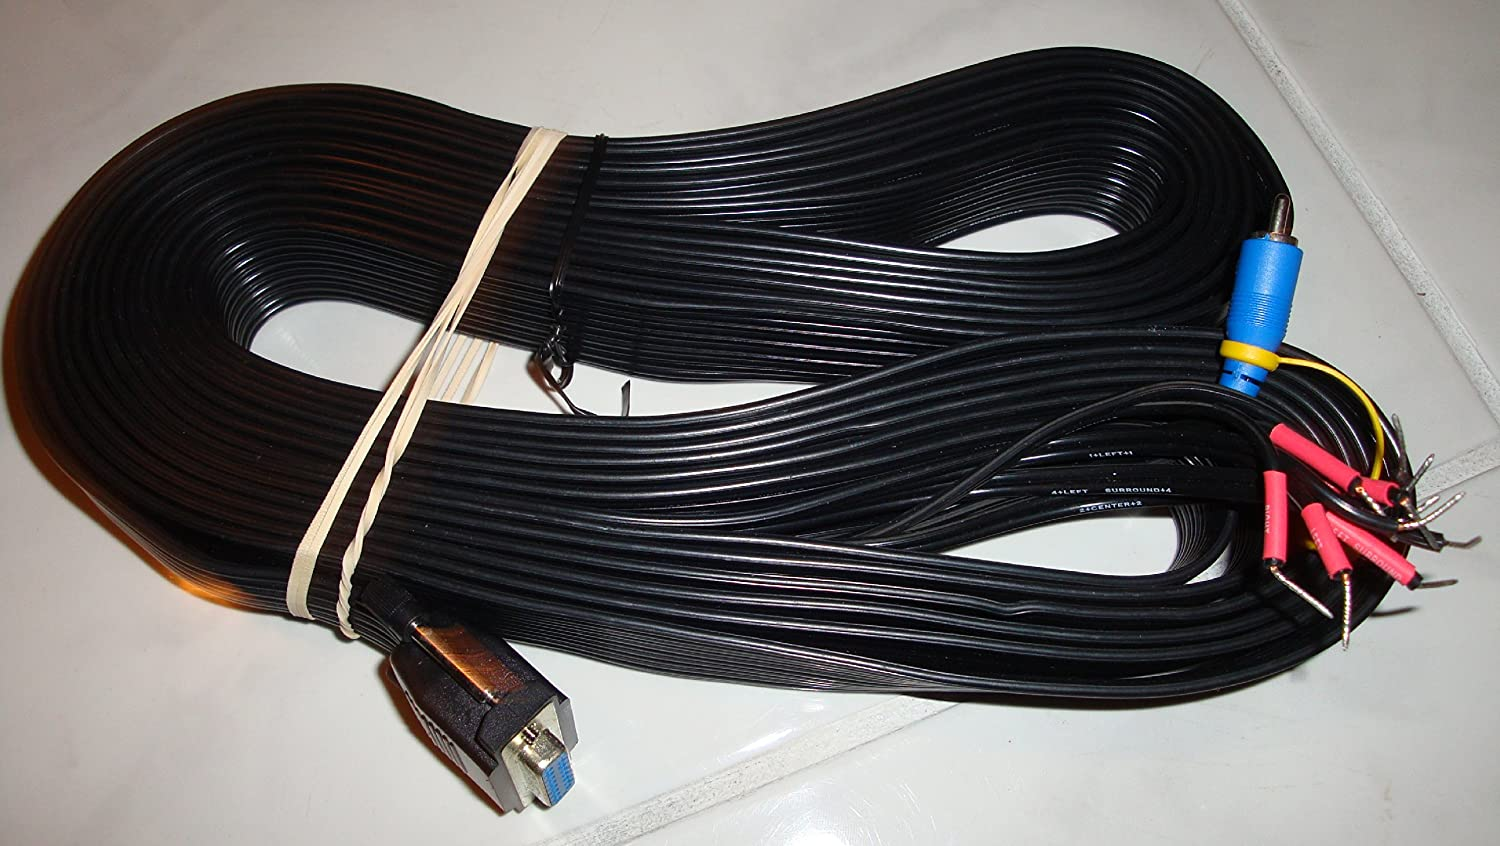 91VP4Uej%2BCL._SL1500_ amazon com bose audio cable 15 pin from subwoofer to receiver  at reclaimingppi.co